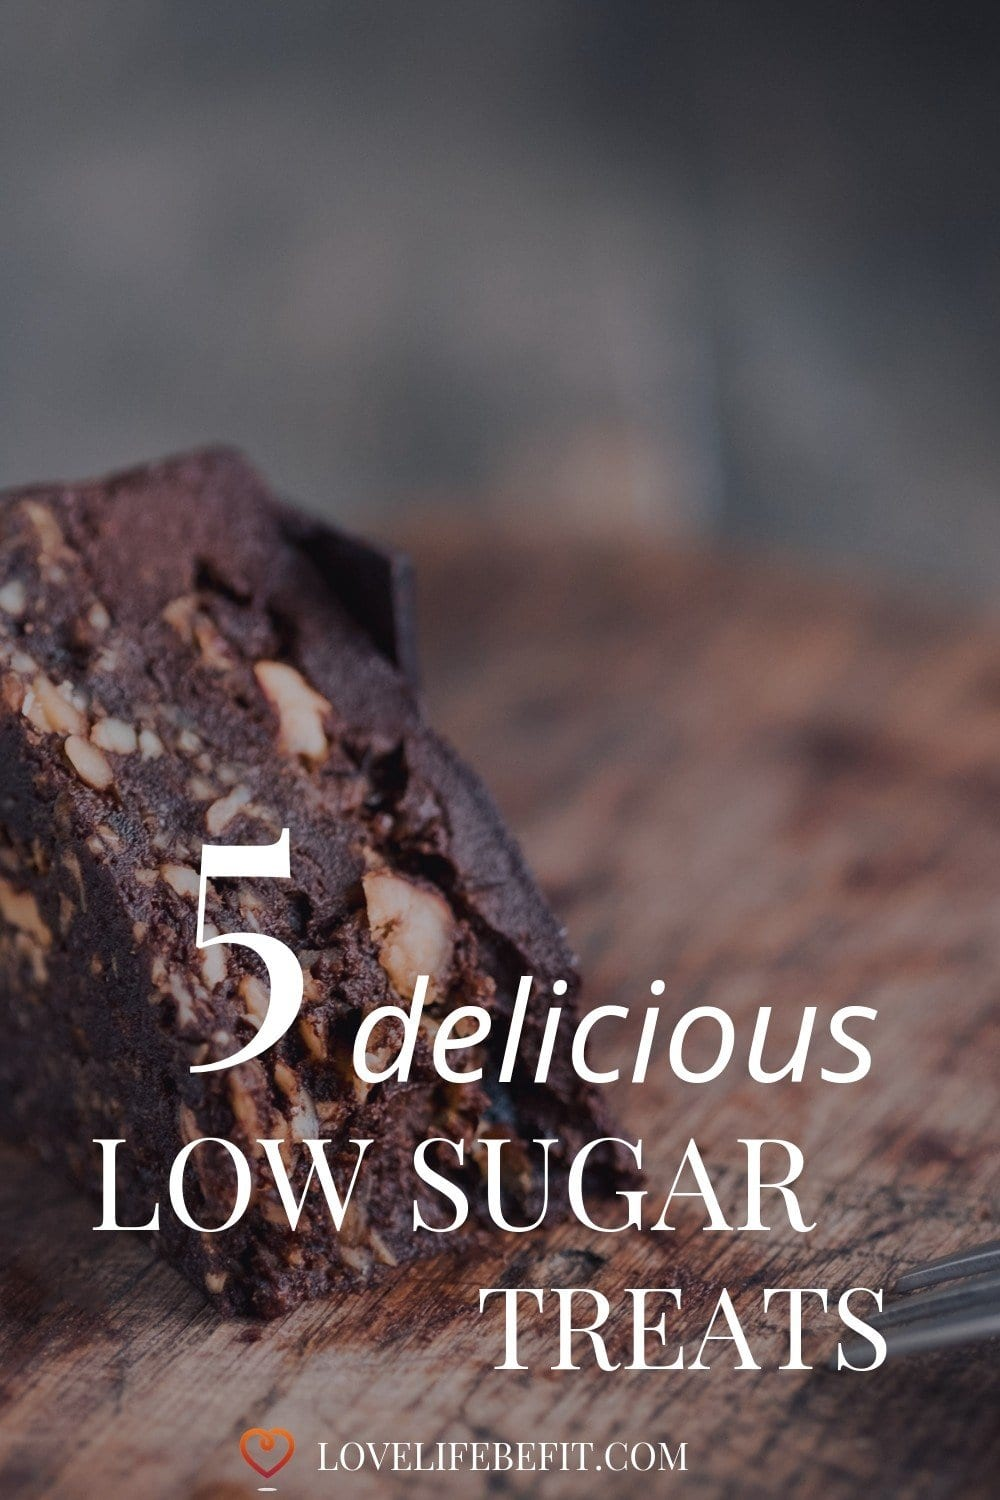 When you\'ve got a sweet tooth, going cold turkey on sugar isn\'t always possible. Rather than raiding your local bakery, these low sugar treats will satisfy those cravings without leaving you feeling too guilty... #quitsugar #healthyeating #healthyeatingtoloseweight